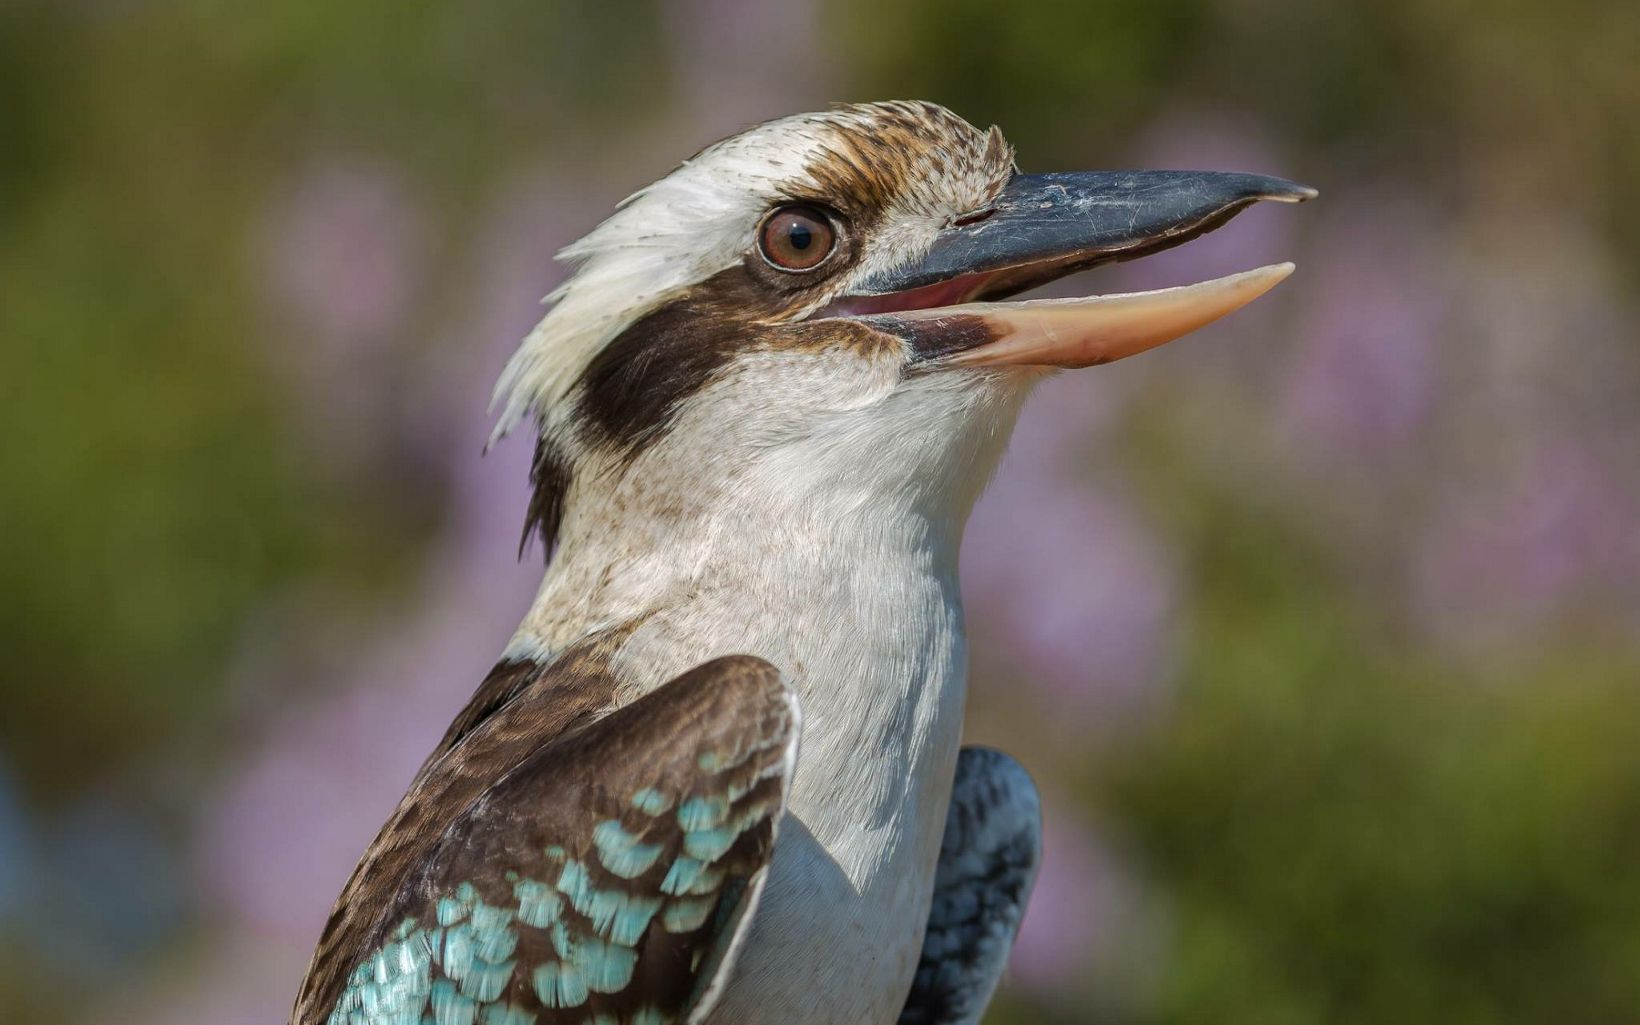 Kookaburras are terrestrial tree kingfishers